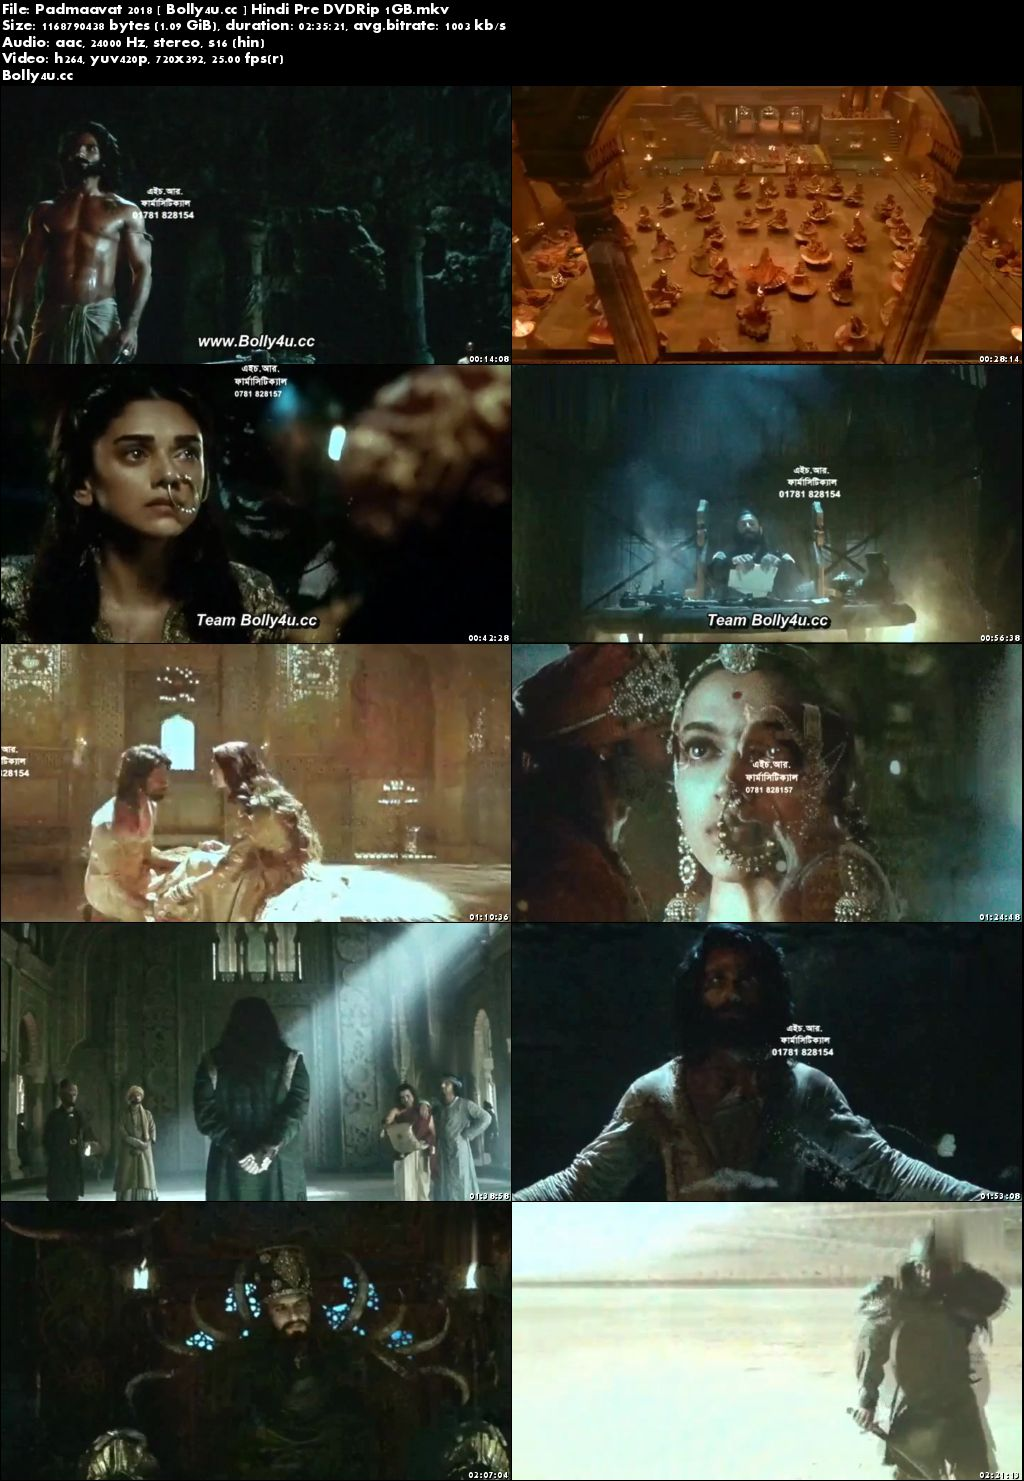 Padmaavat 2018 Pre DVDRip HQ 1Gb Full Hindi Movie Download